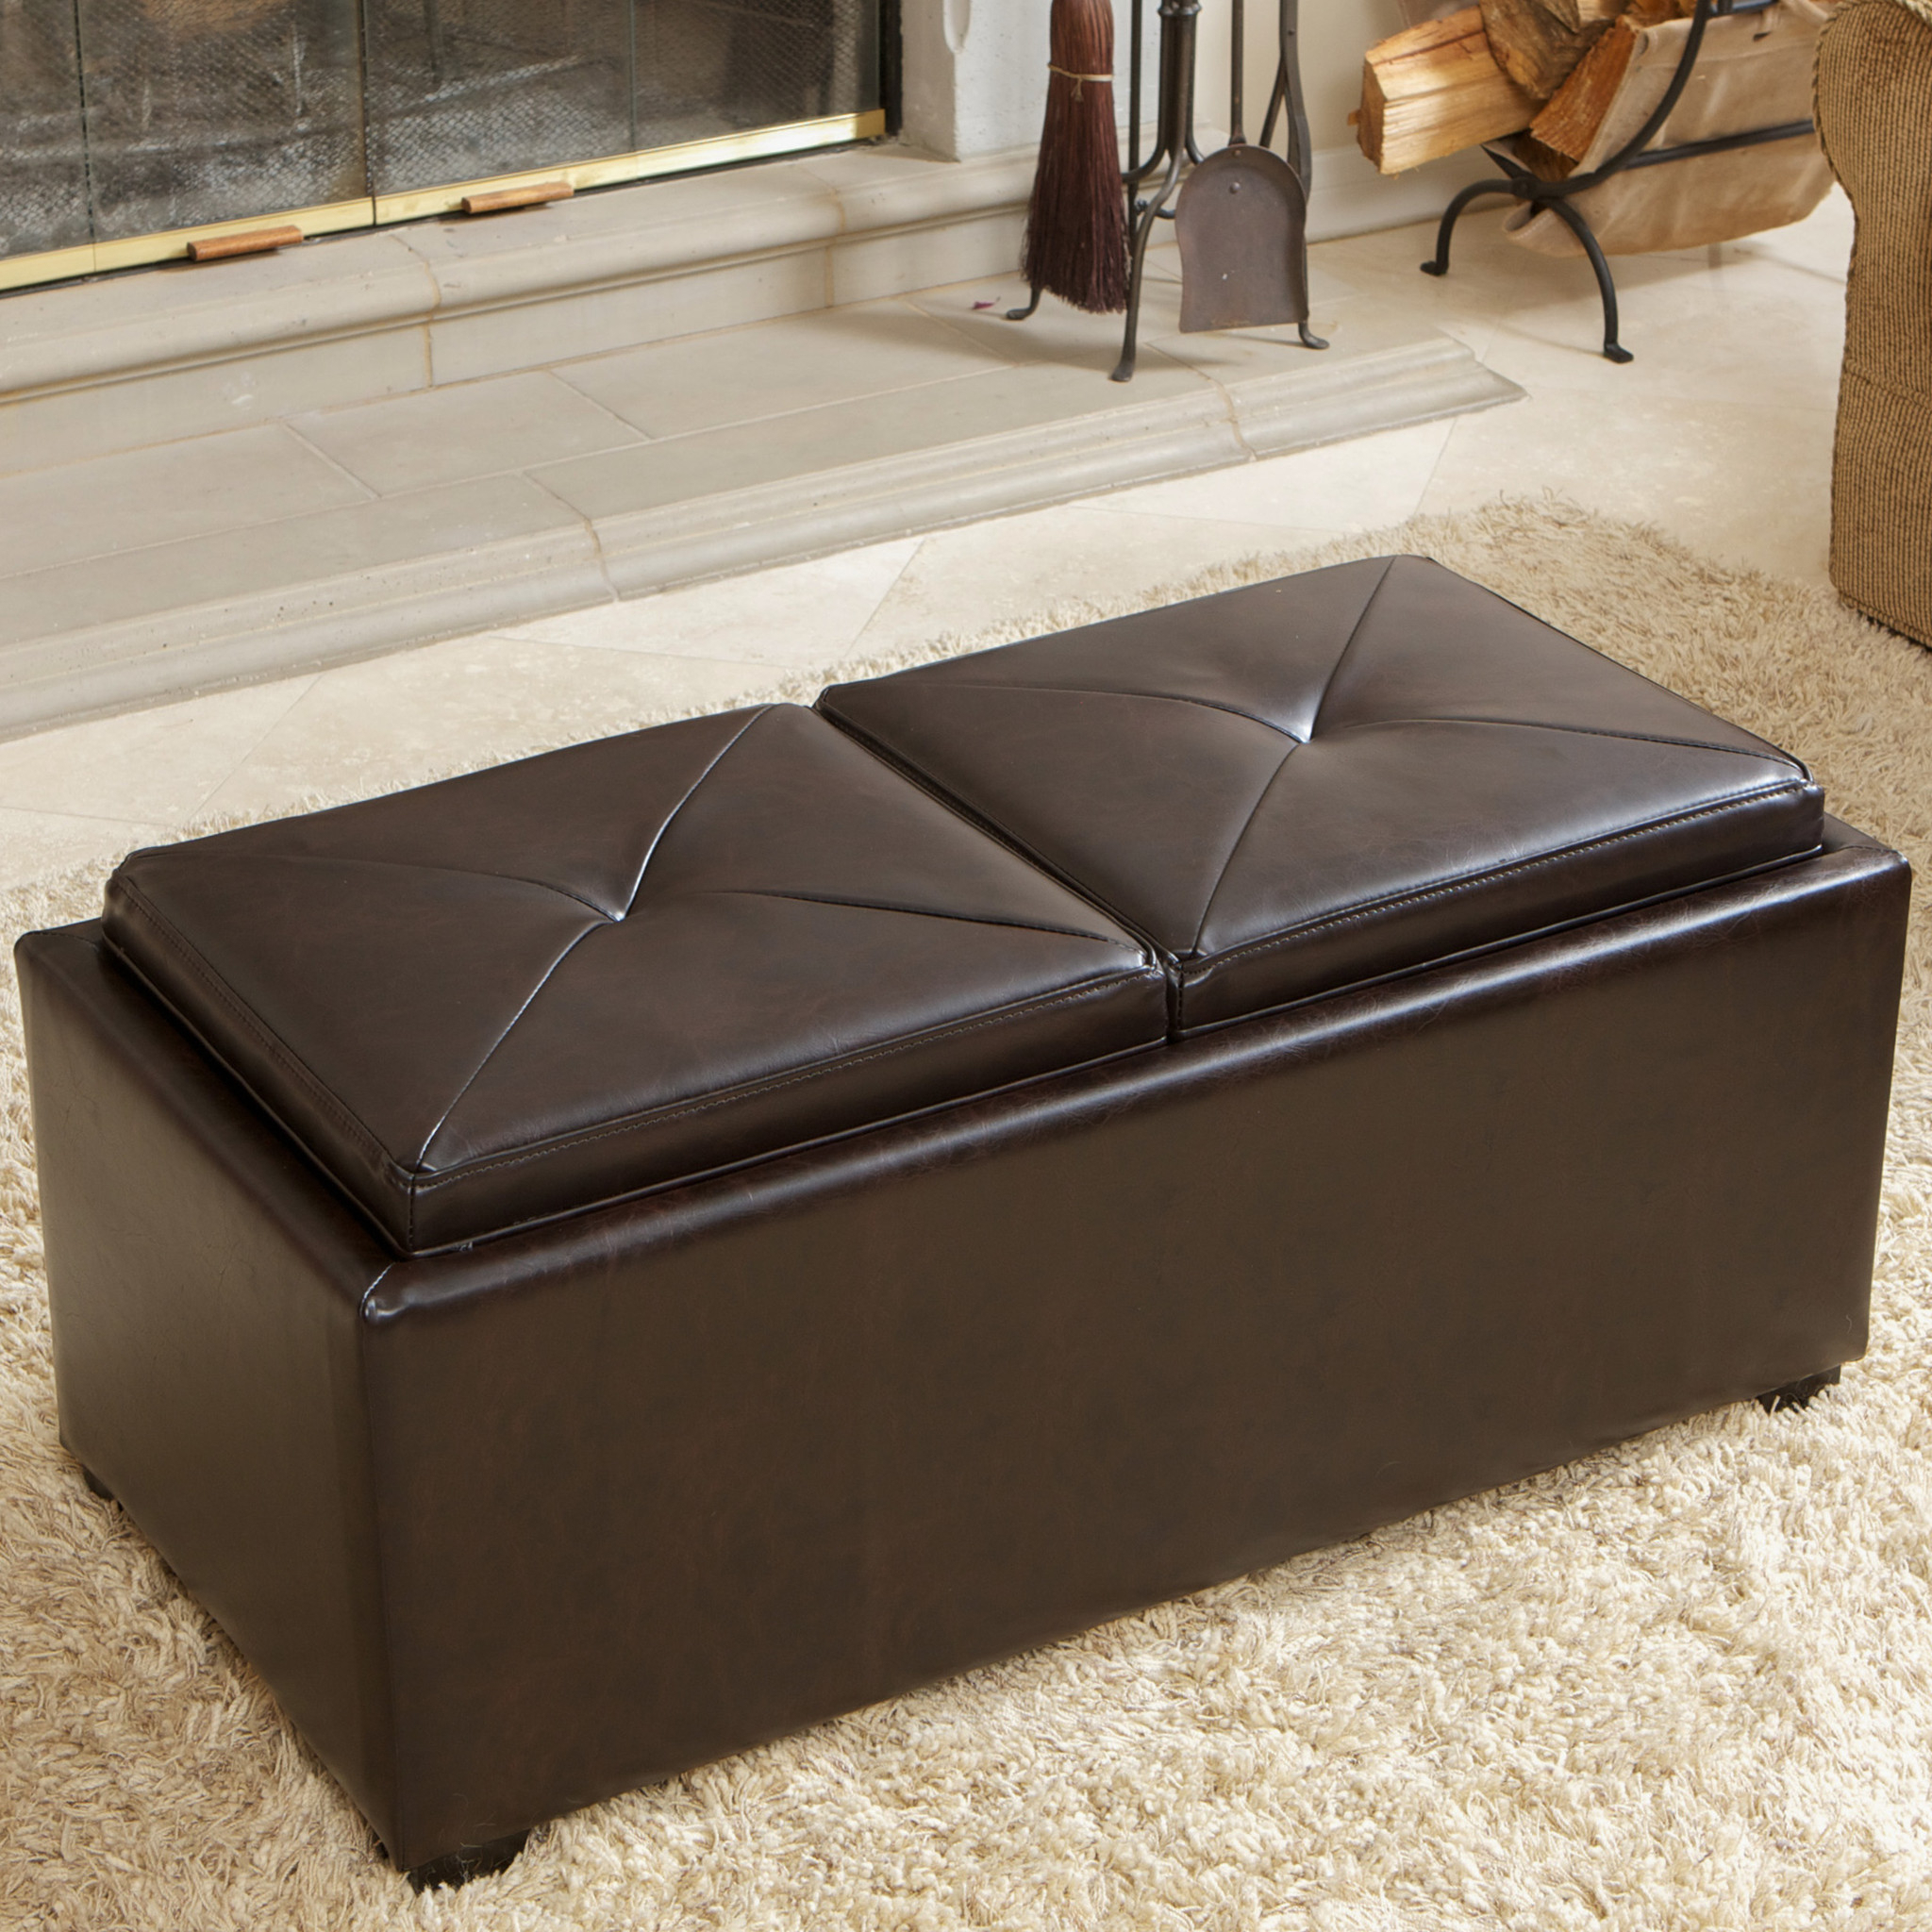 Mill Large Leather Coffee Tables With Regard To 2019 Coffee Tables : Mirrored Tray For Coffee Table Large Ottoman Tray (View 14 of 20)